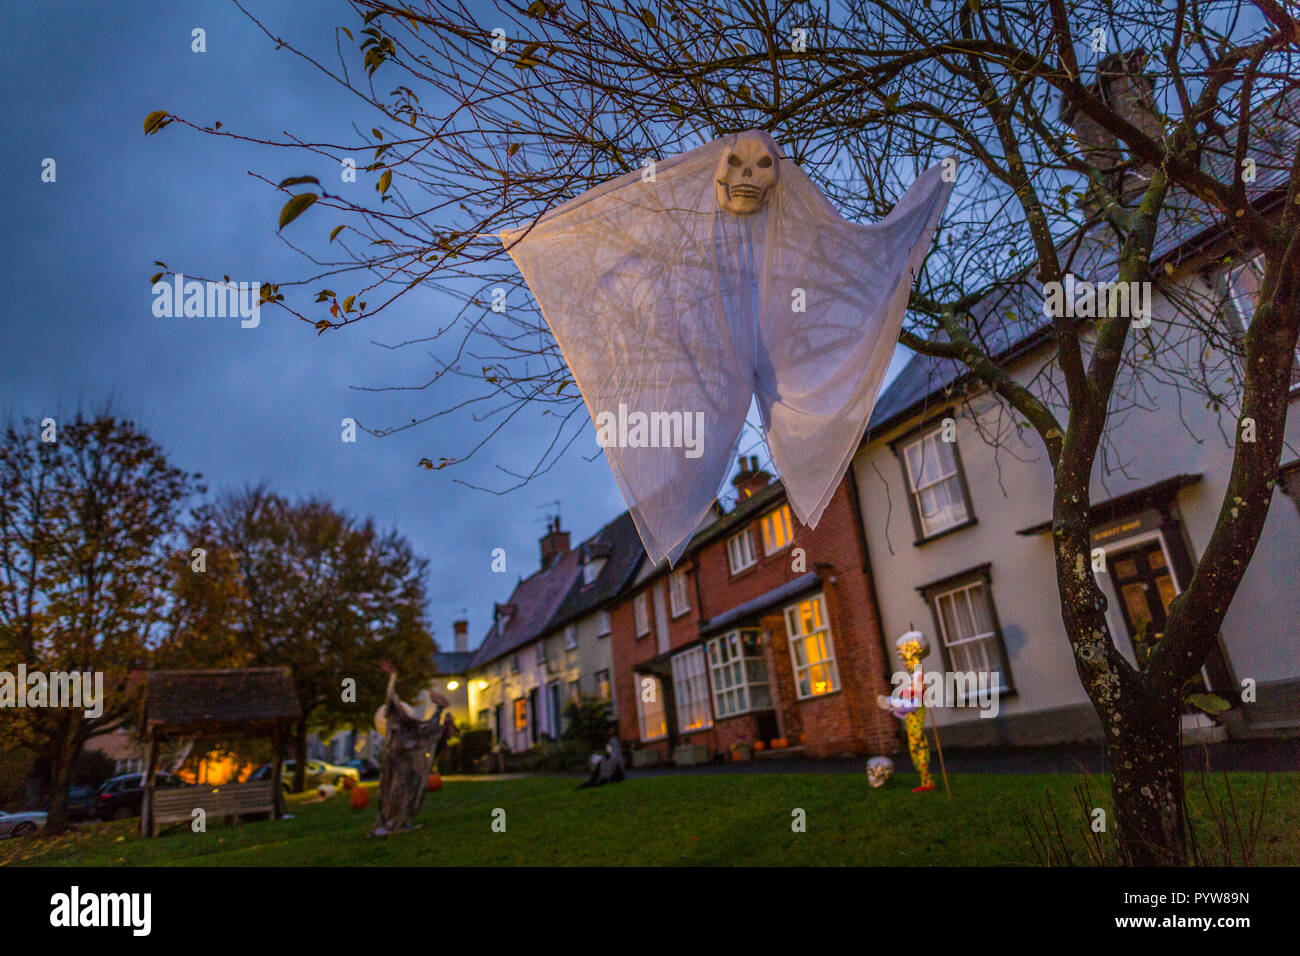 Scary halloween decorations in the dark at dusk on the